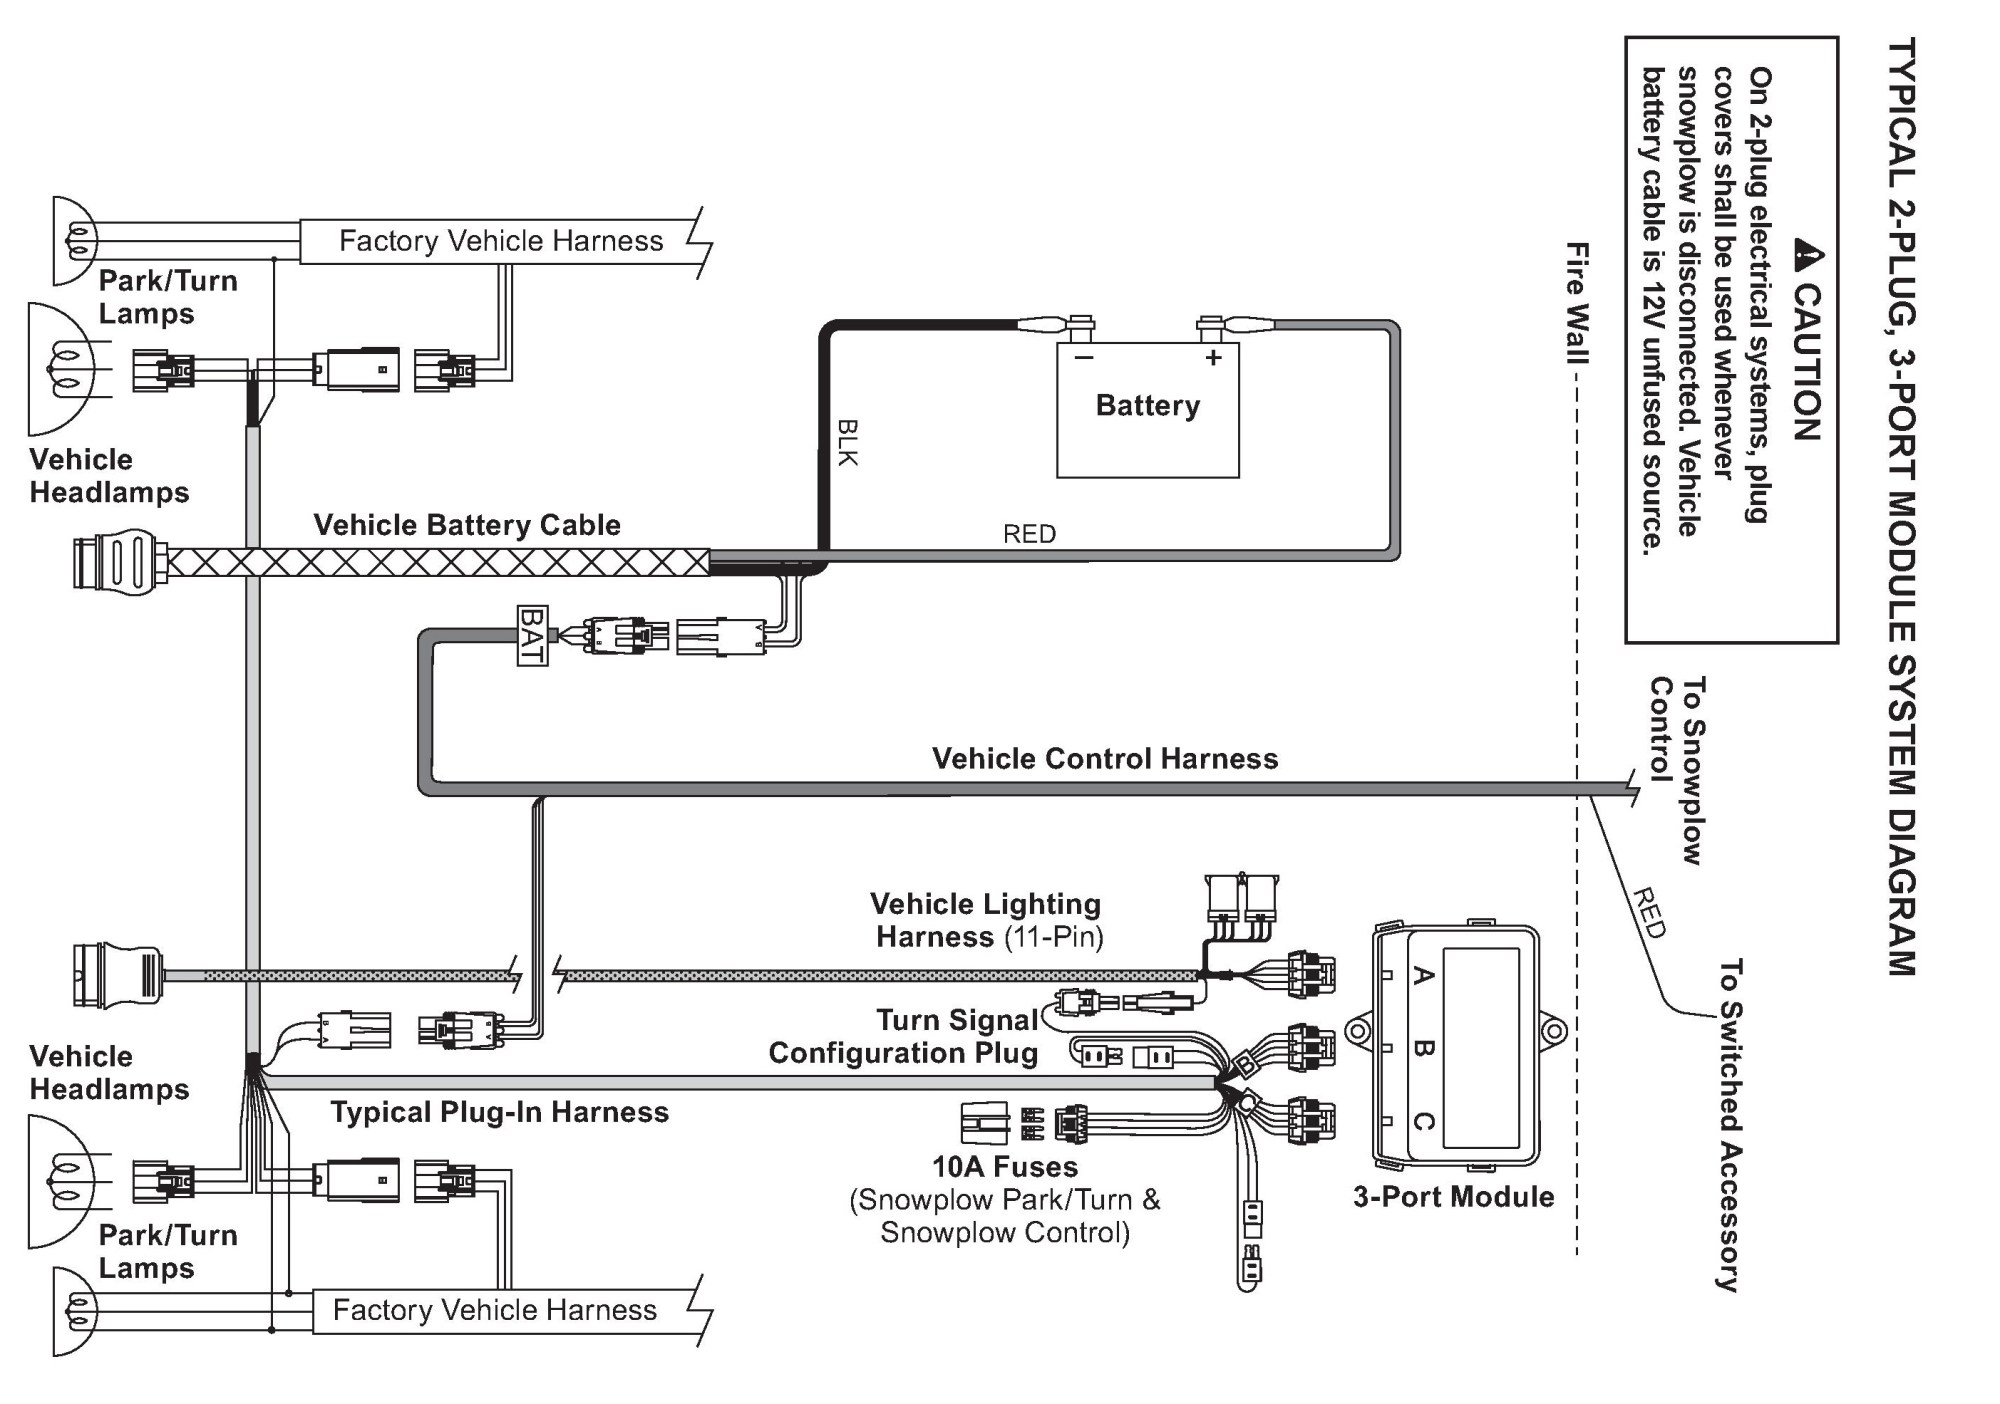 Western 3 Port Isolation Module Wiring Diagram - on